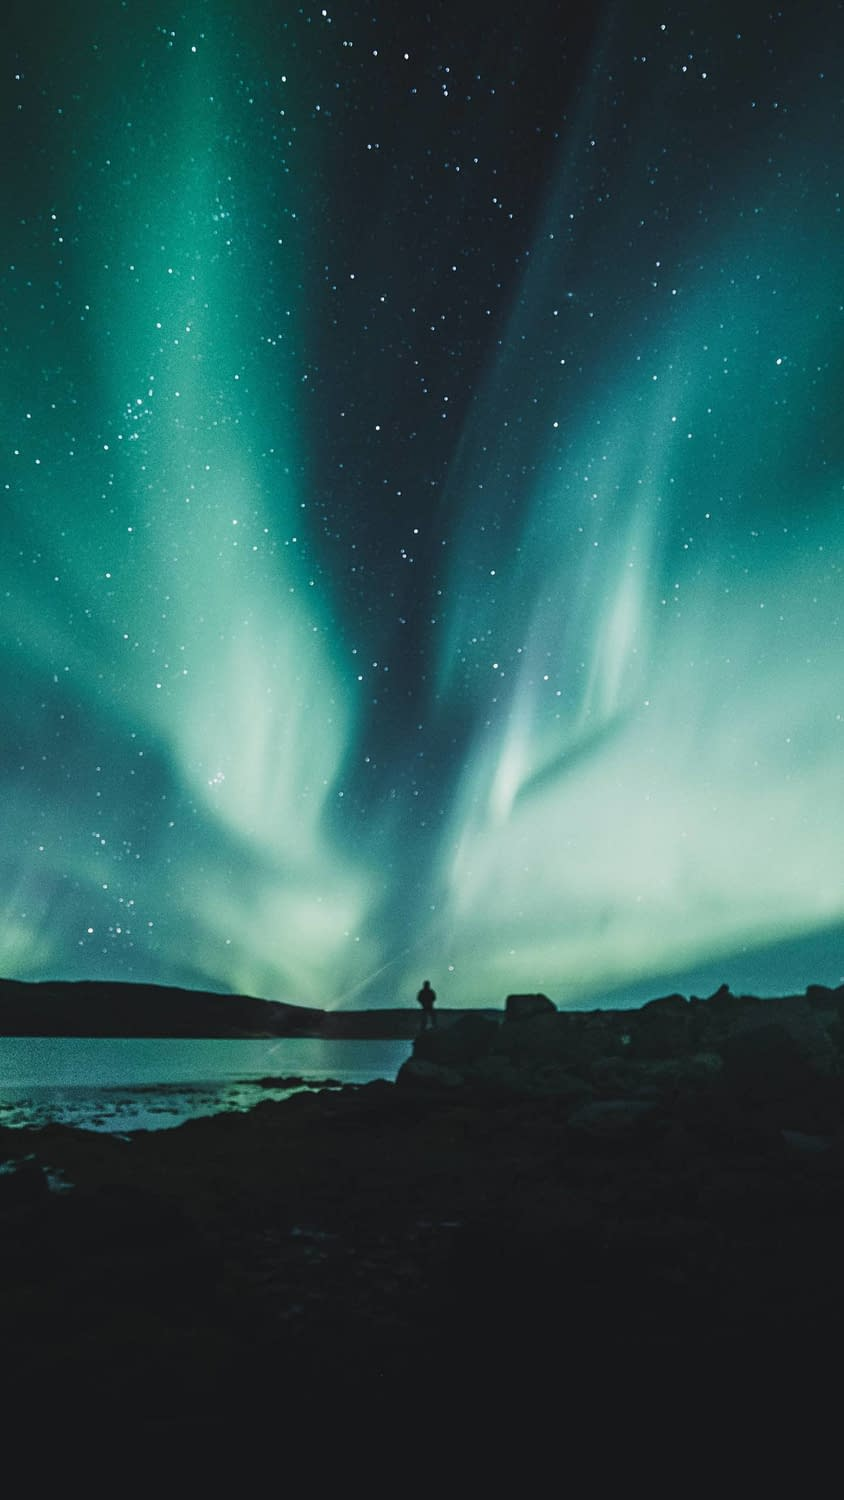 An awesome shot of the Northern Lights as they're seen in Iceland!